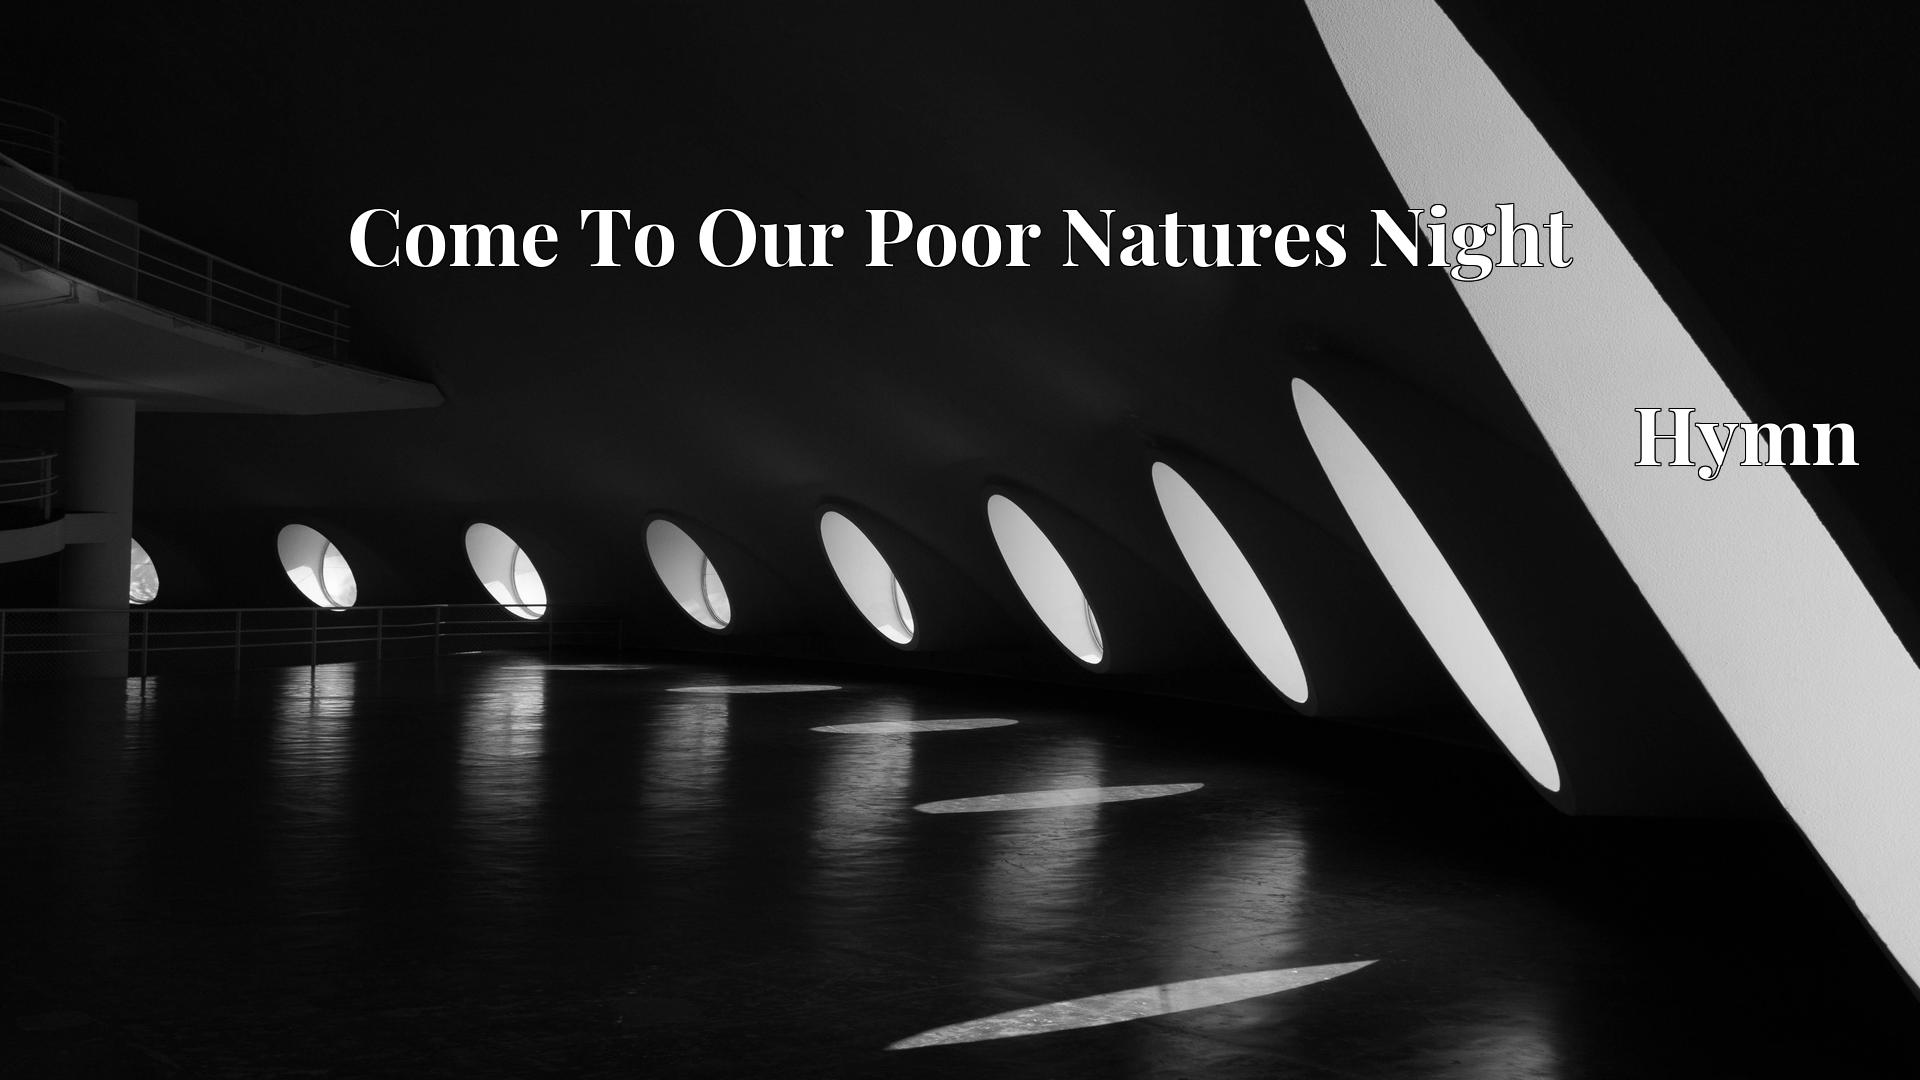 Come To Our Poor Natures Night Hymn Lyric